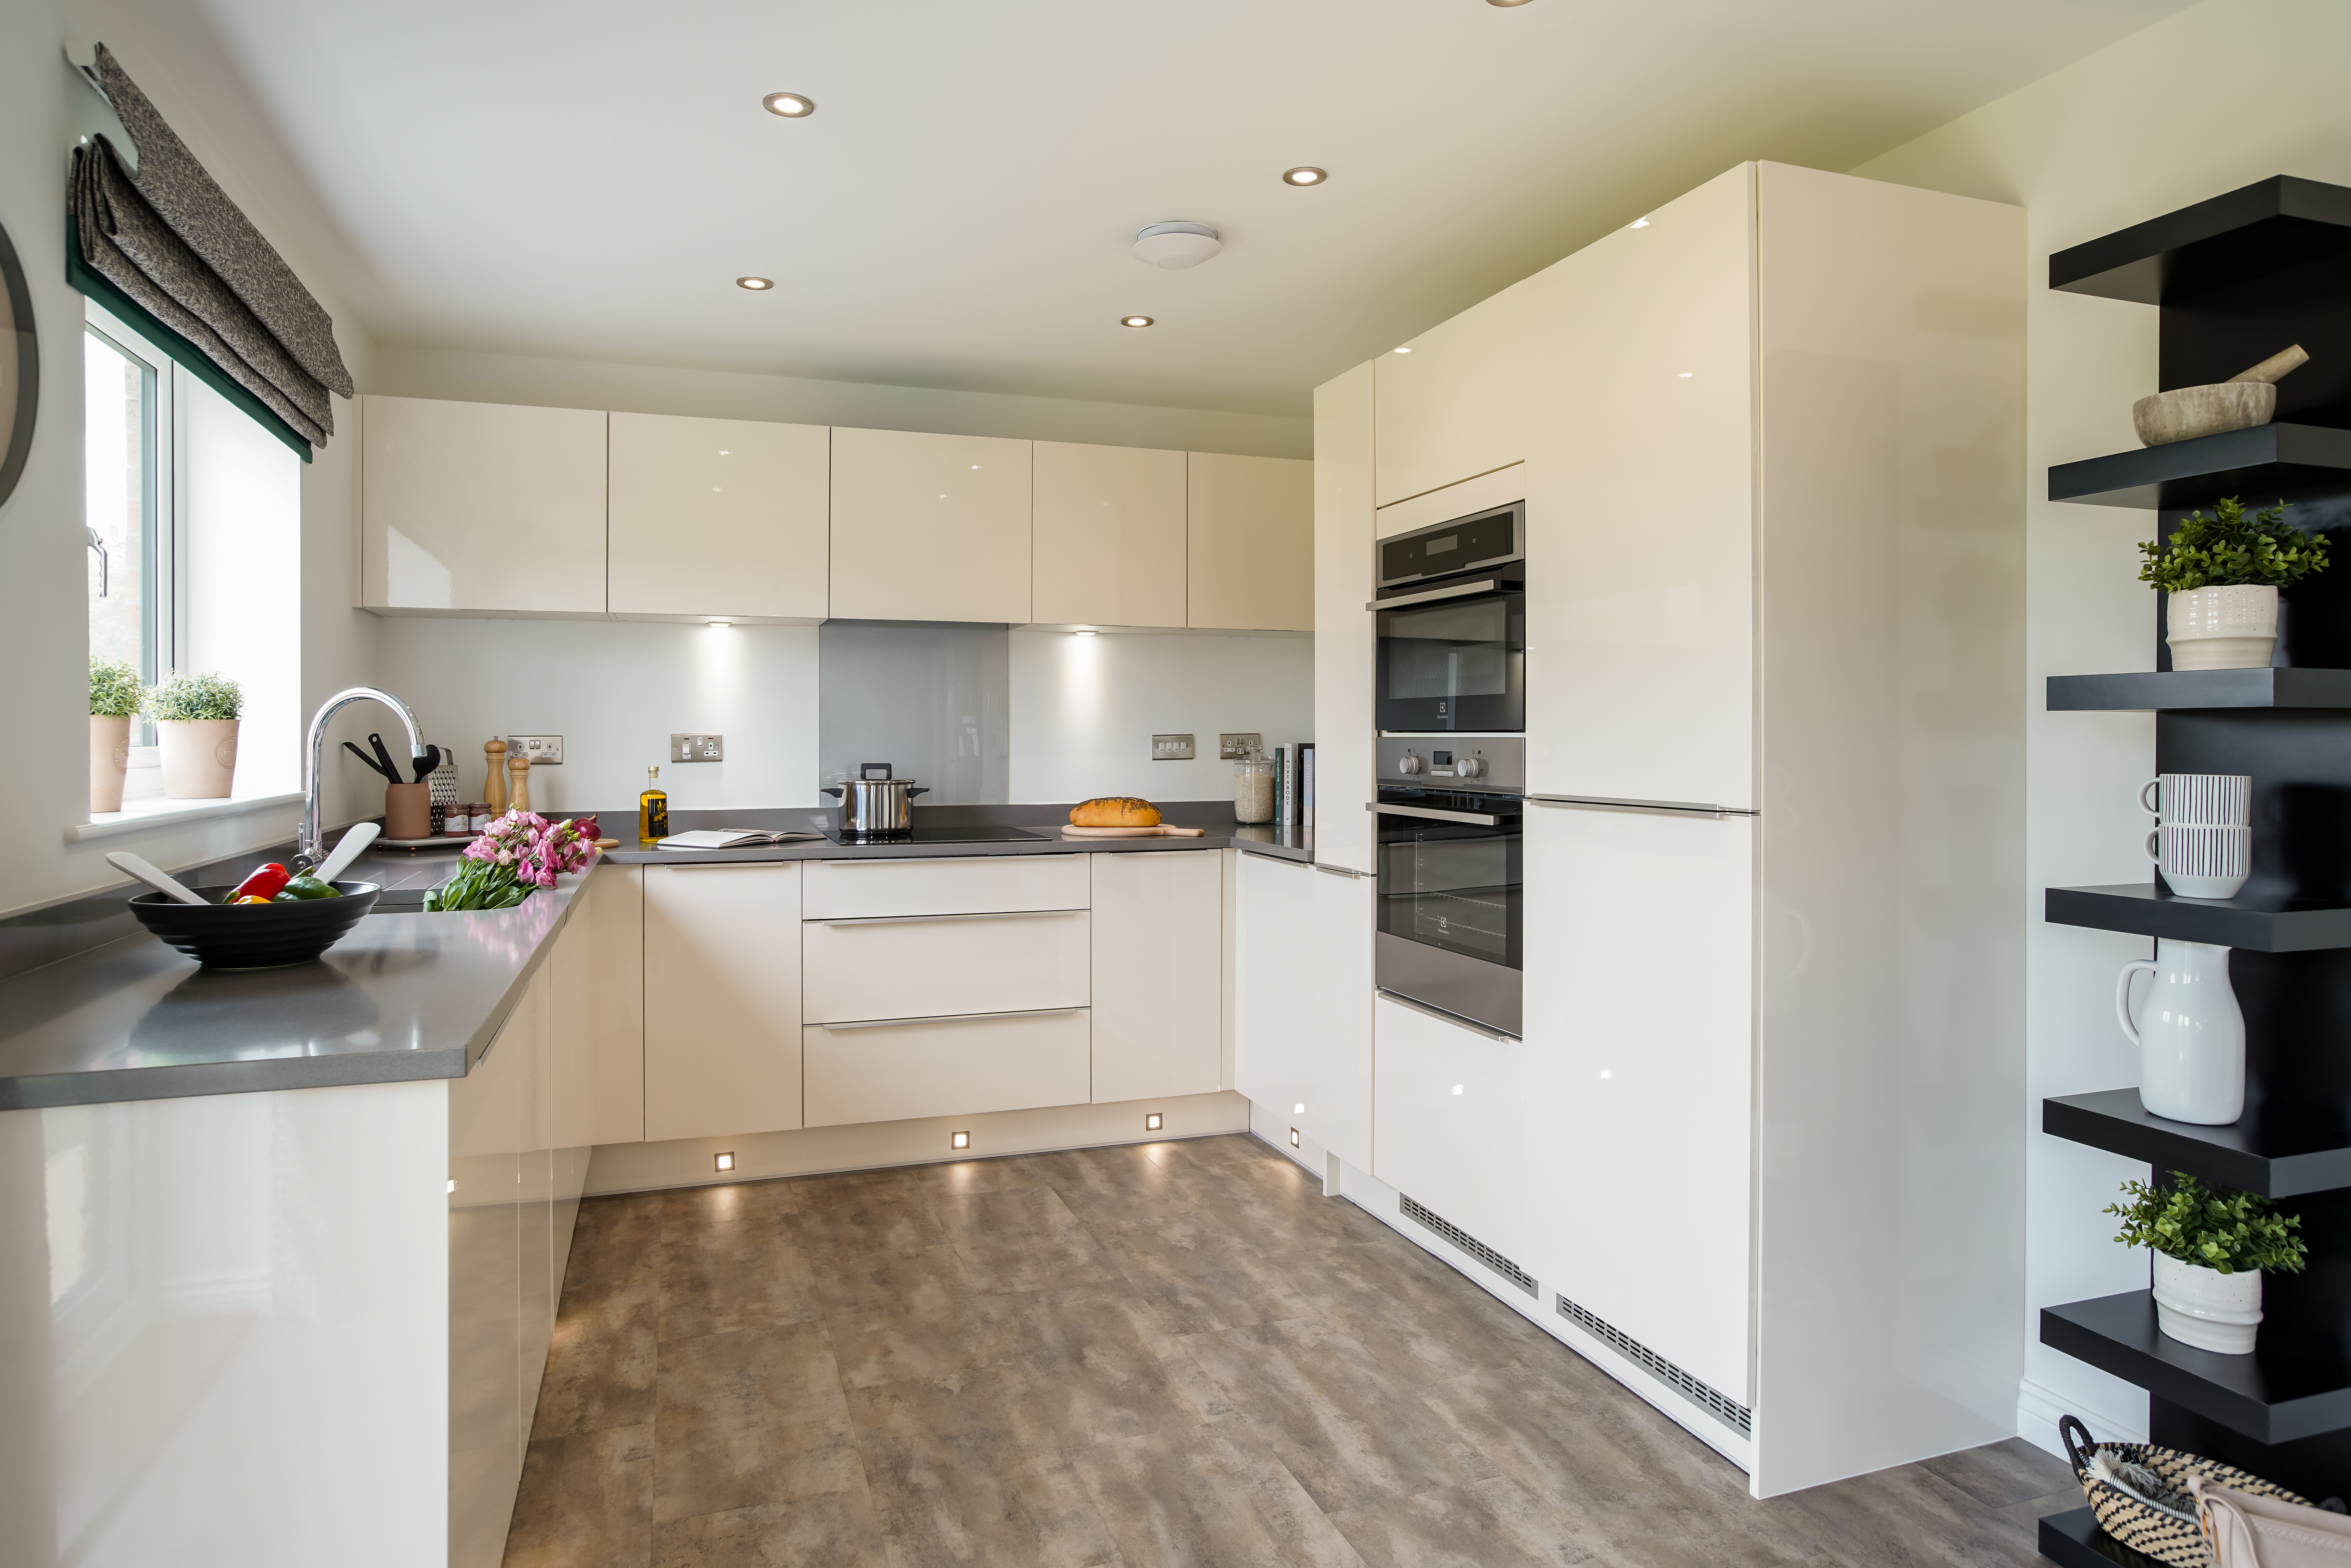 TW_NE_Eden Gardens_Downham_Kitchen 4